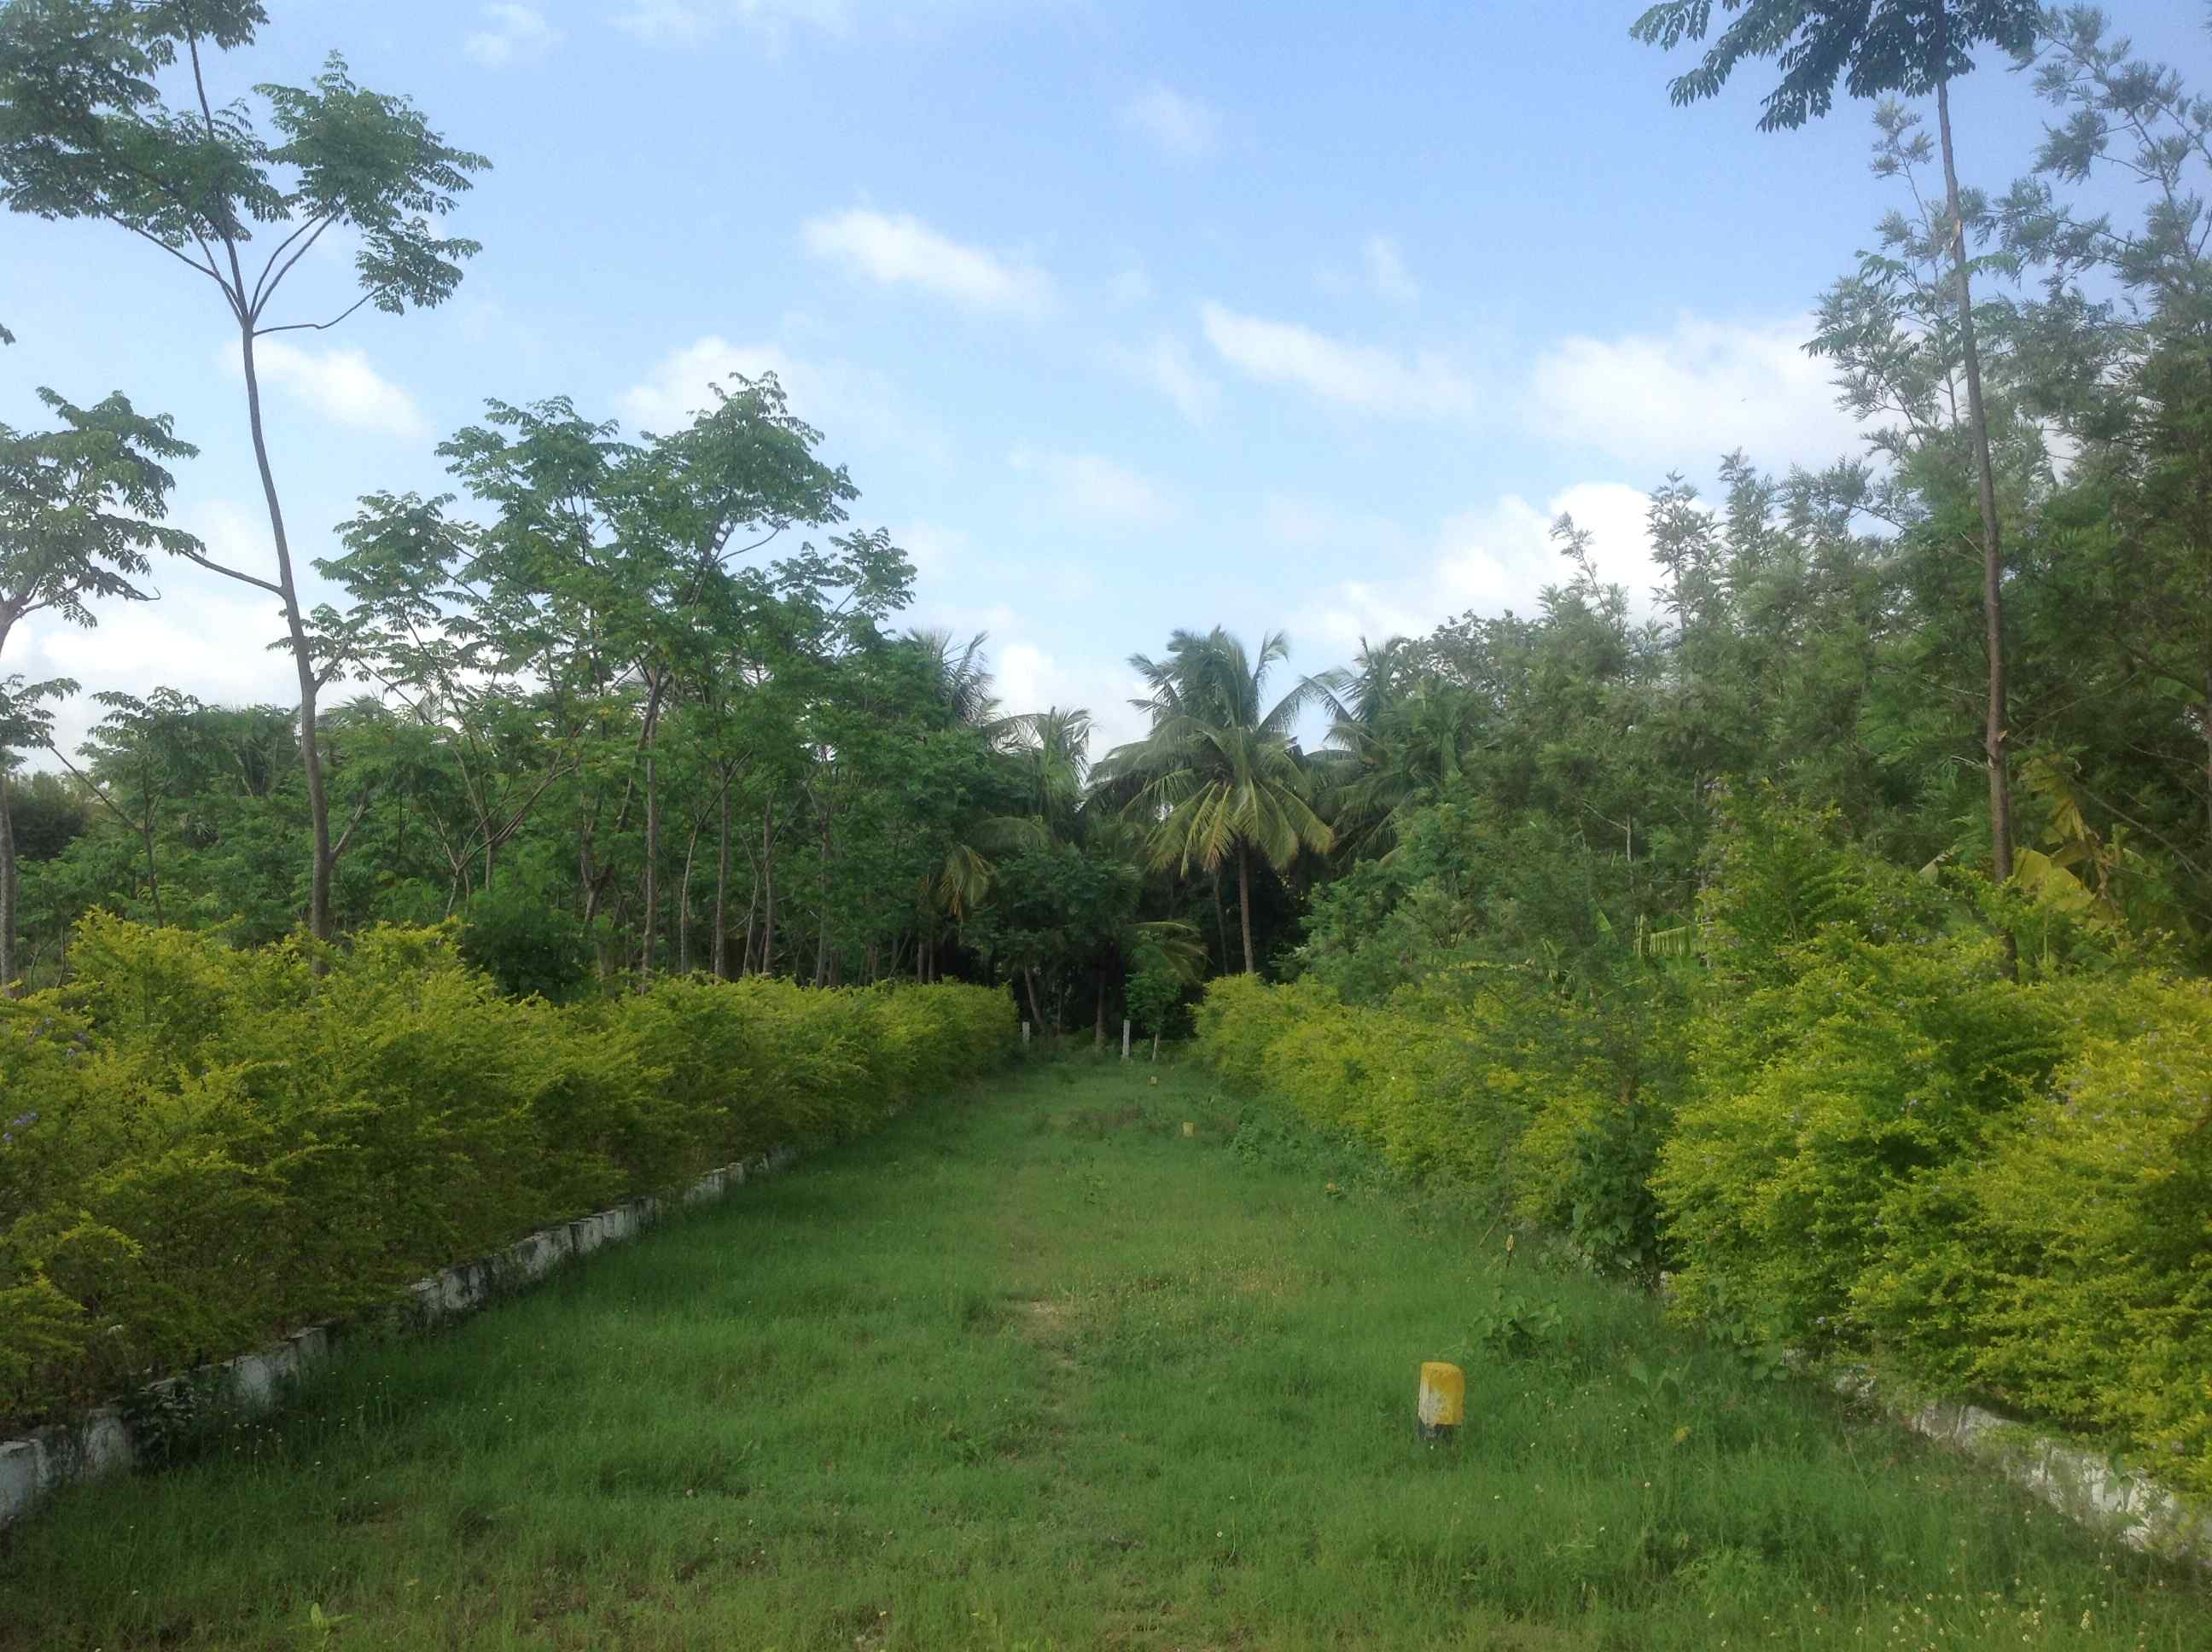 Farmland for sale-greenwoods-plantation project-land for sale near me-real estate Bangalore